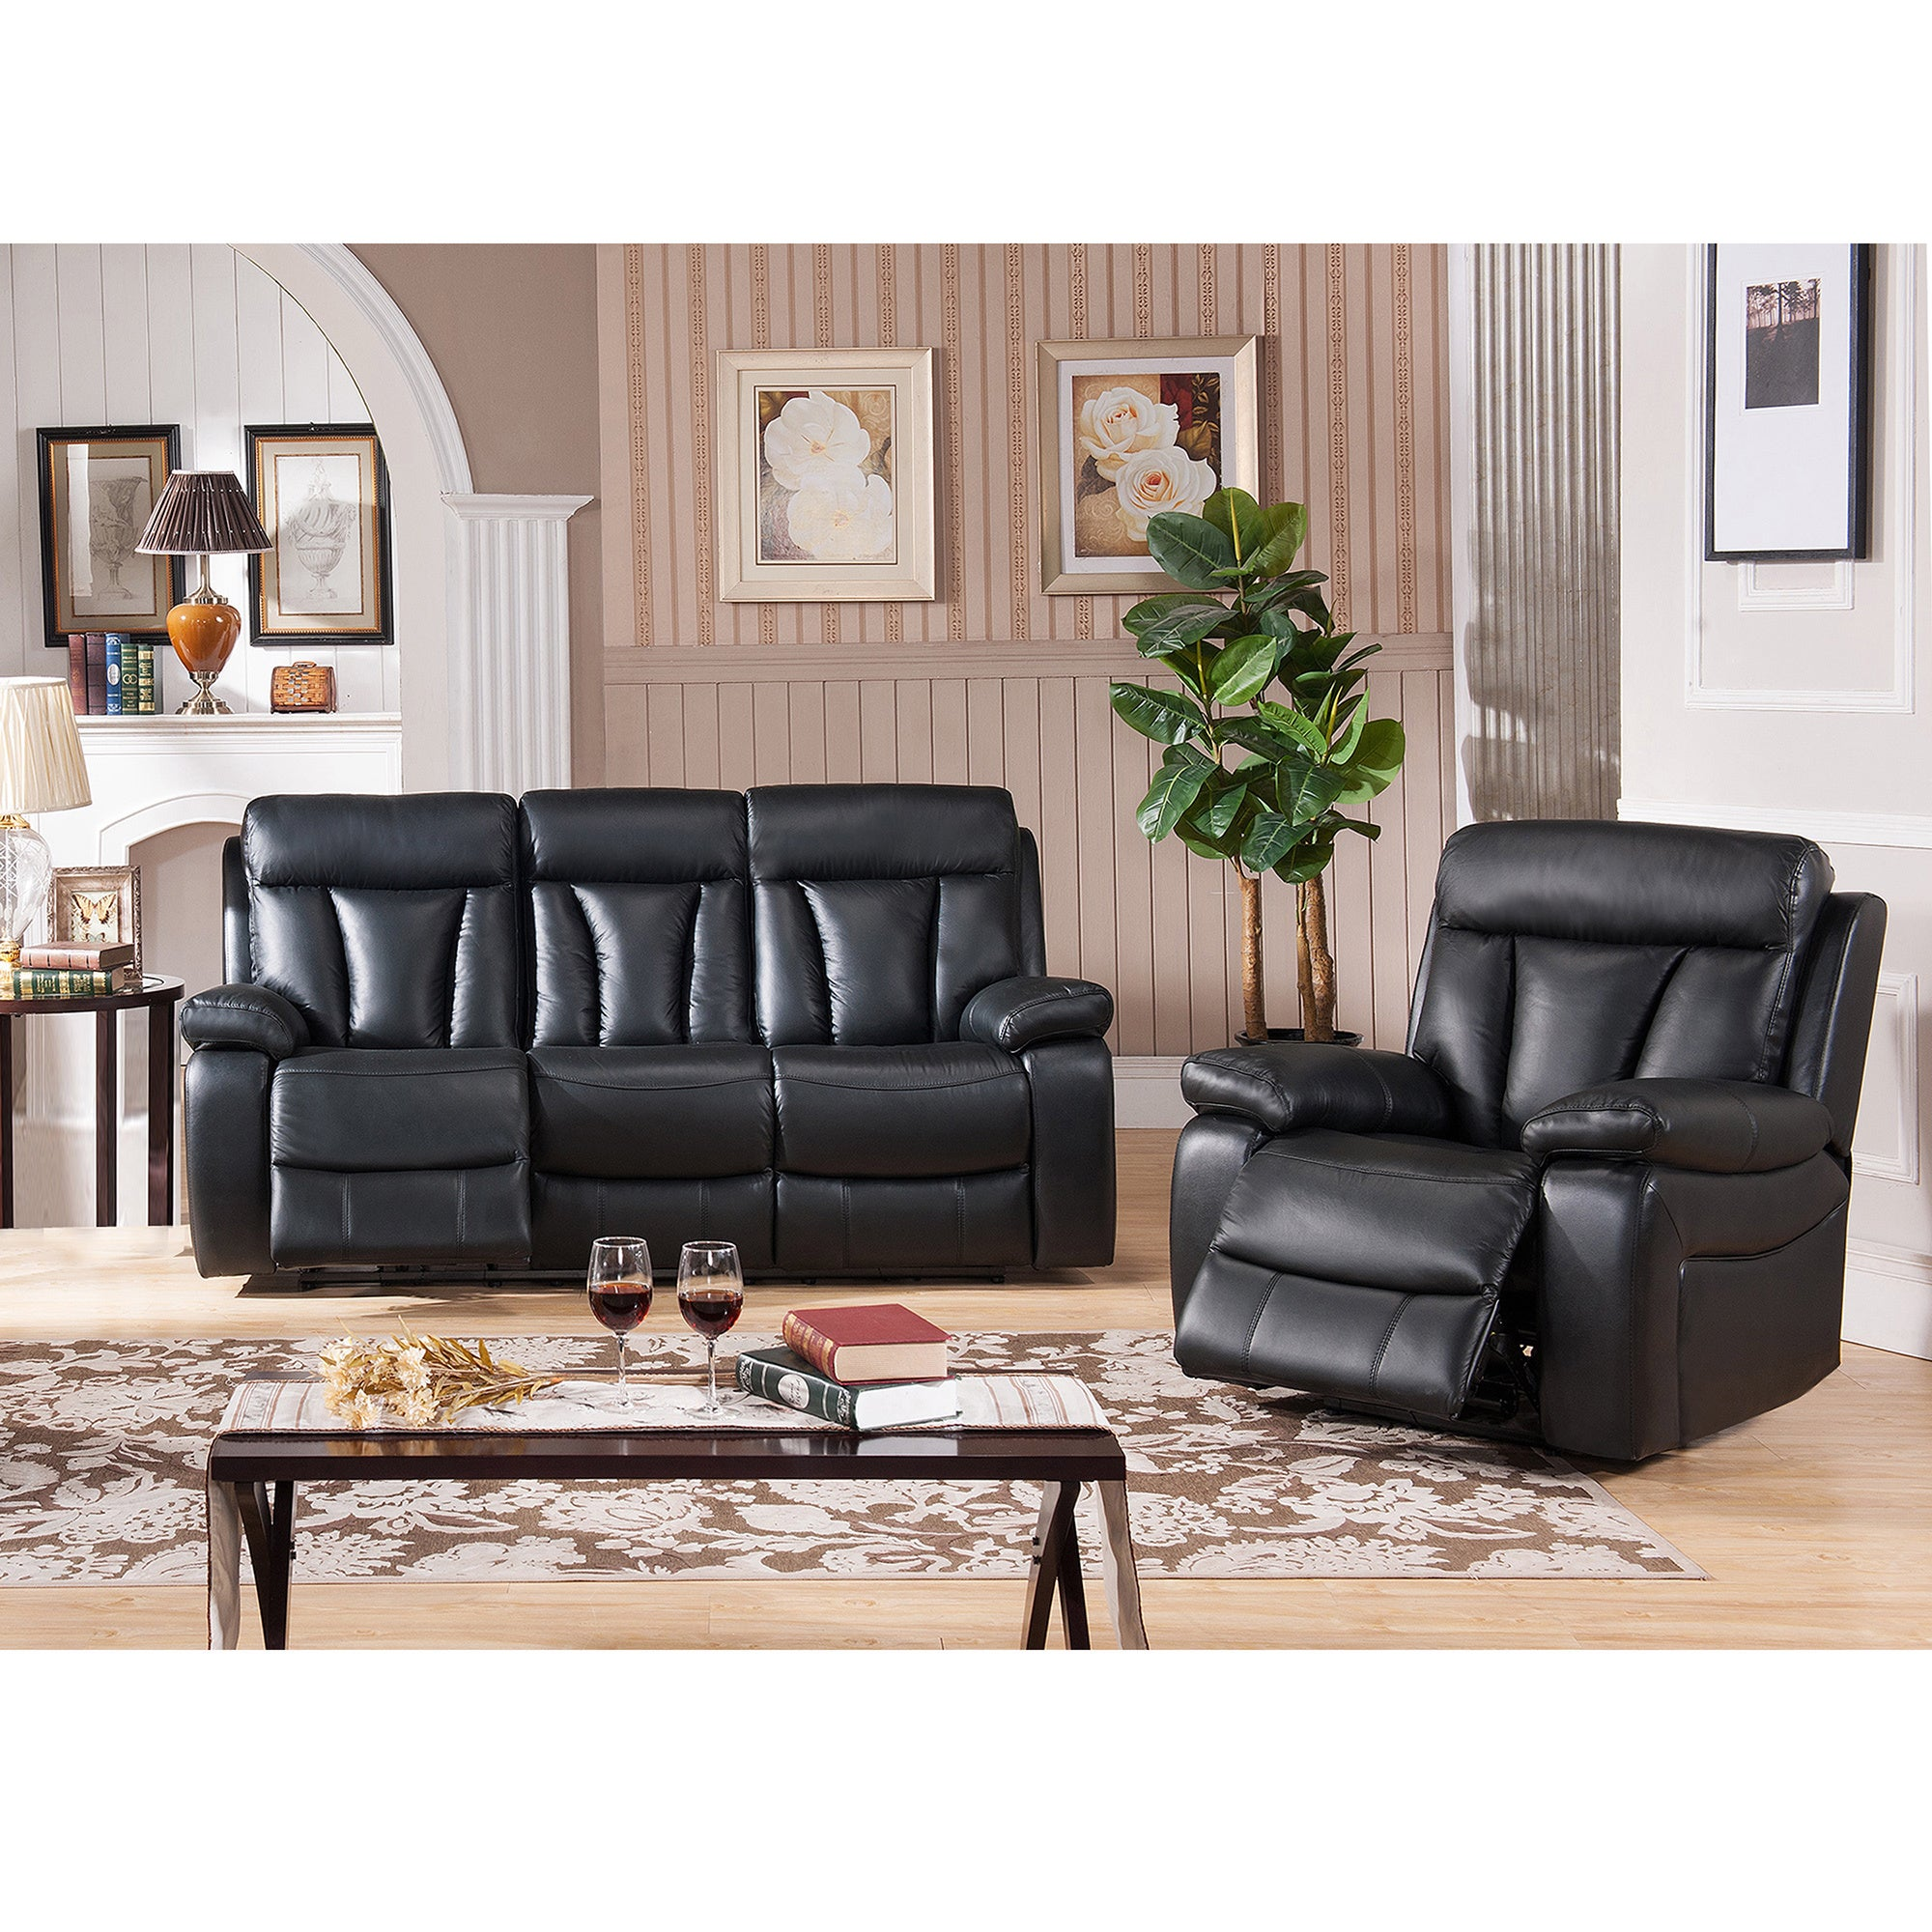 Vedder Black Top Grain Leather Motorized Lay Flat Reclining Sofa And Recliner Free Shipping Today 10085872